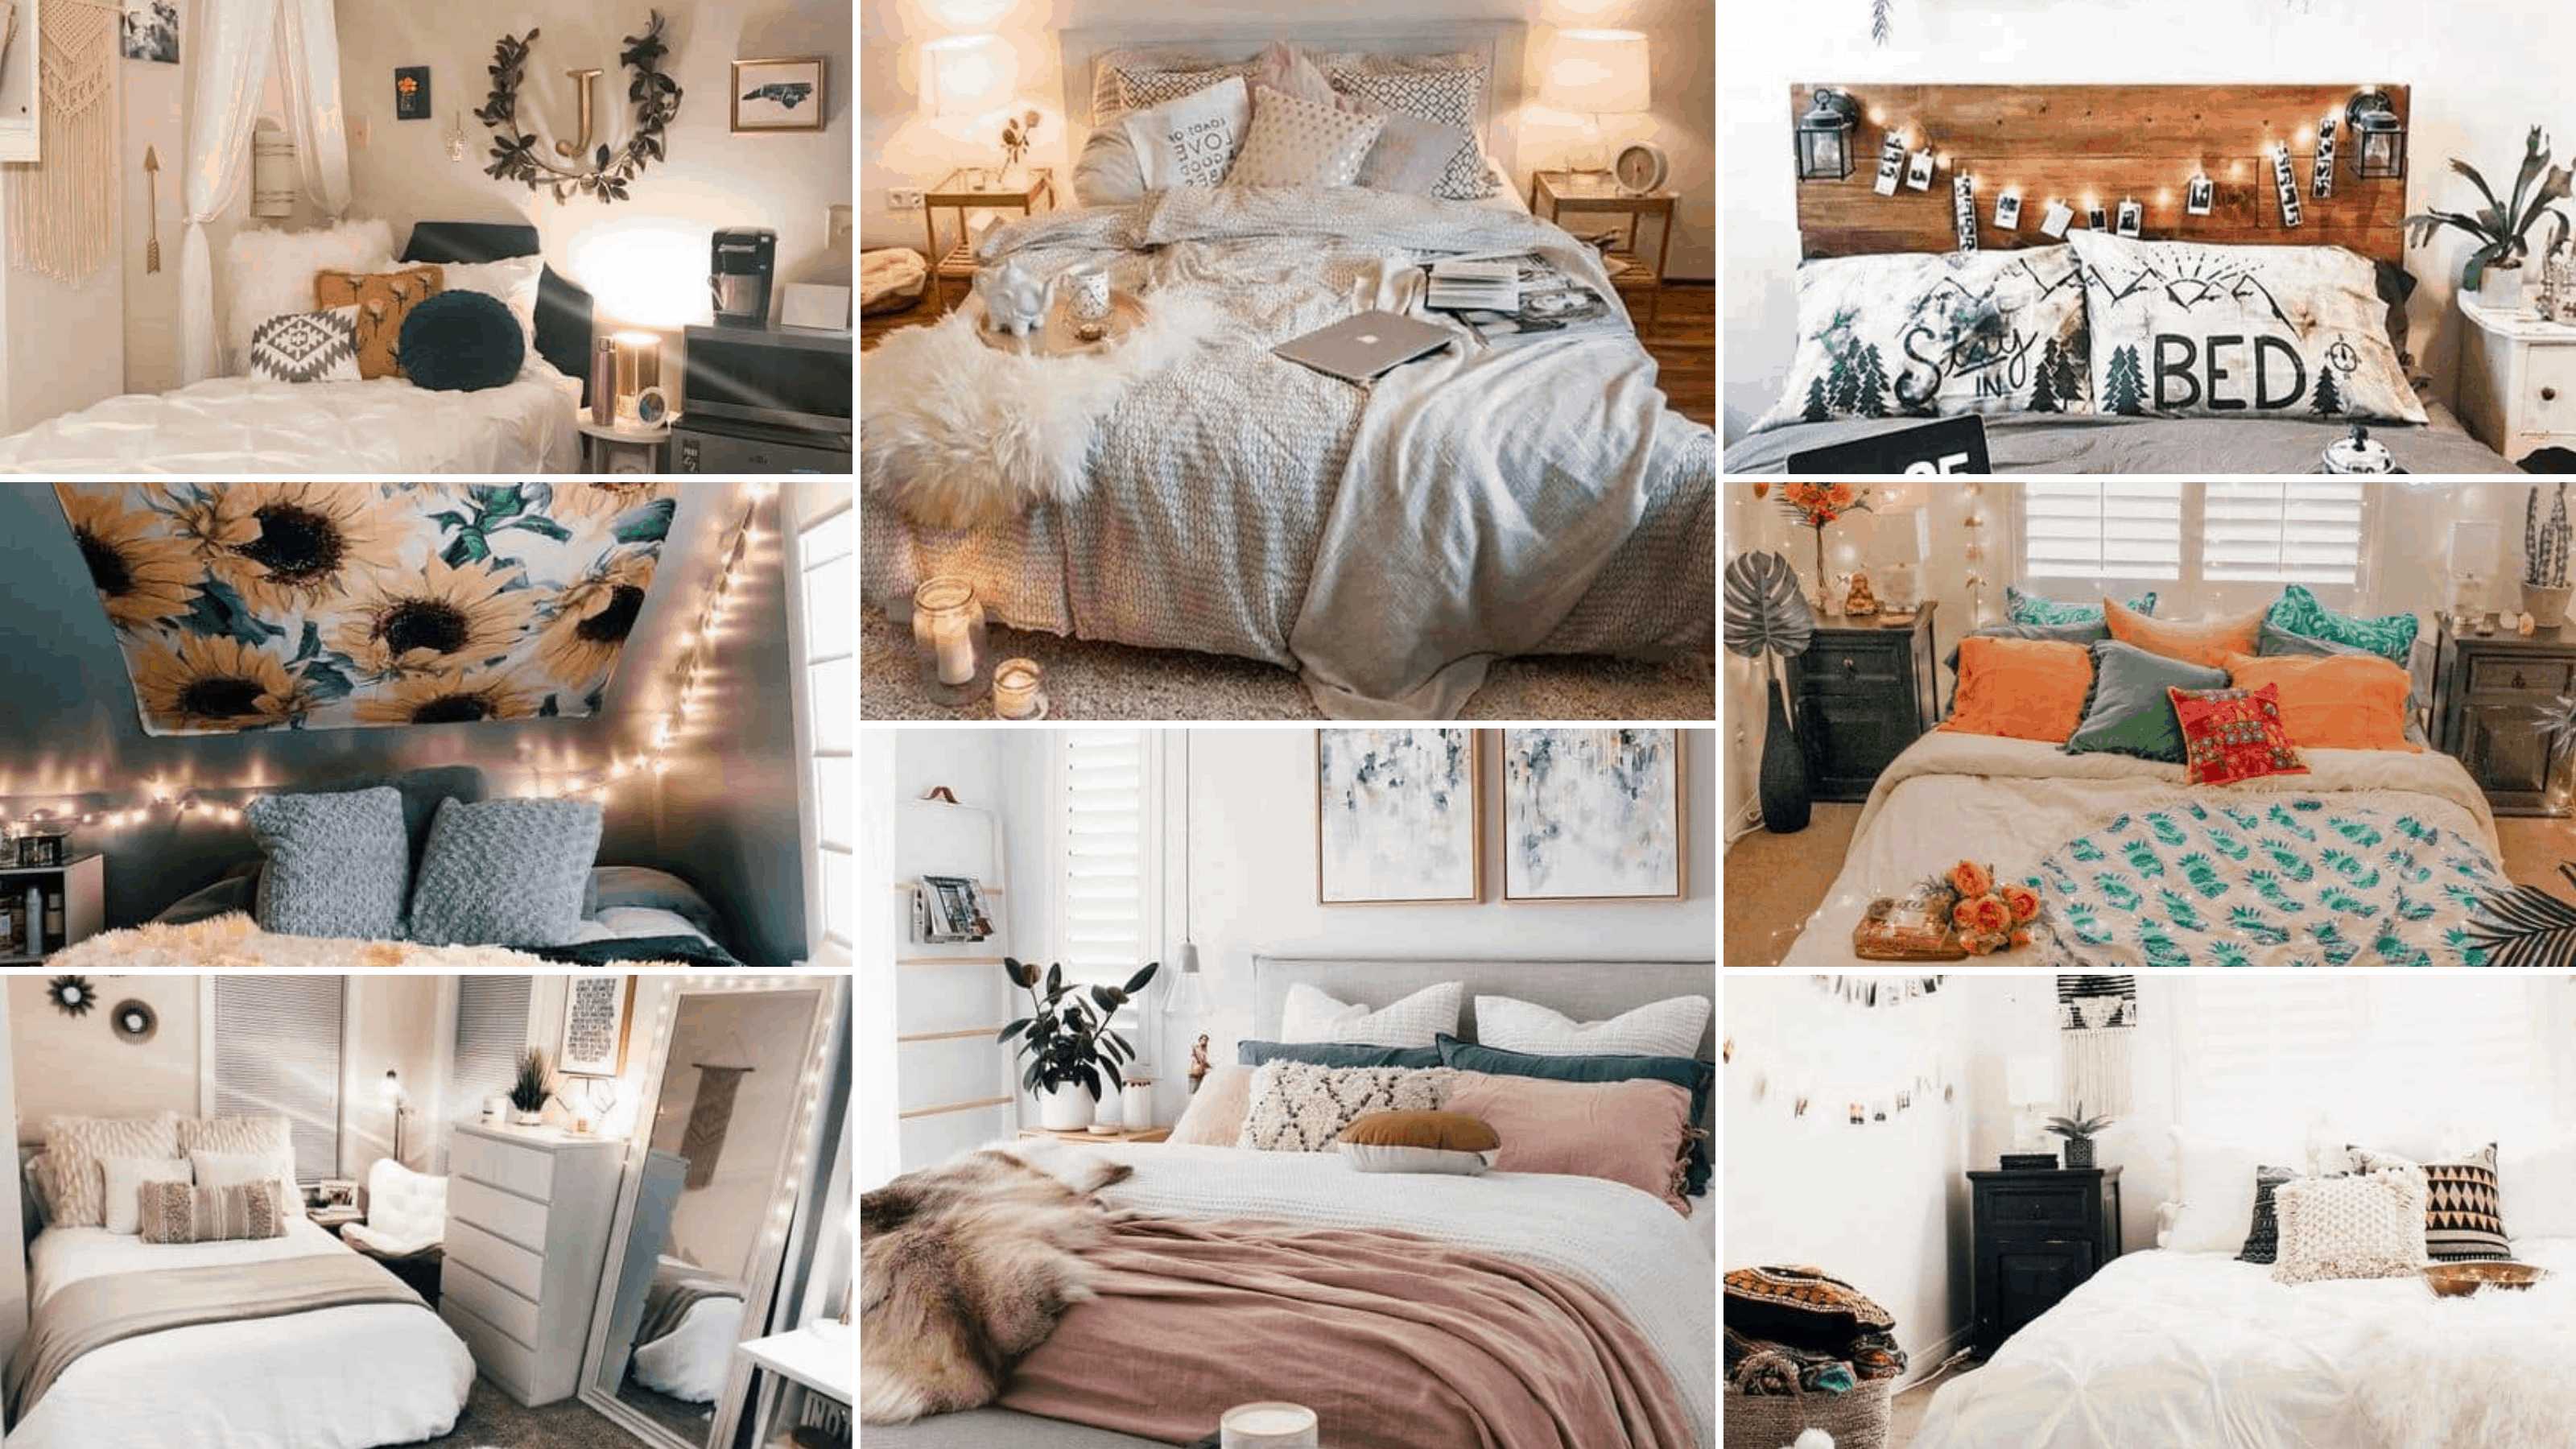 29 Genius College Apartment Bedroom Ideas You Ll Want To Copy By Sophia Lee